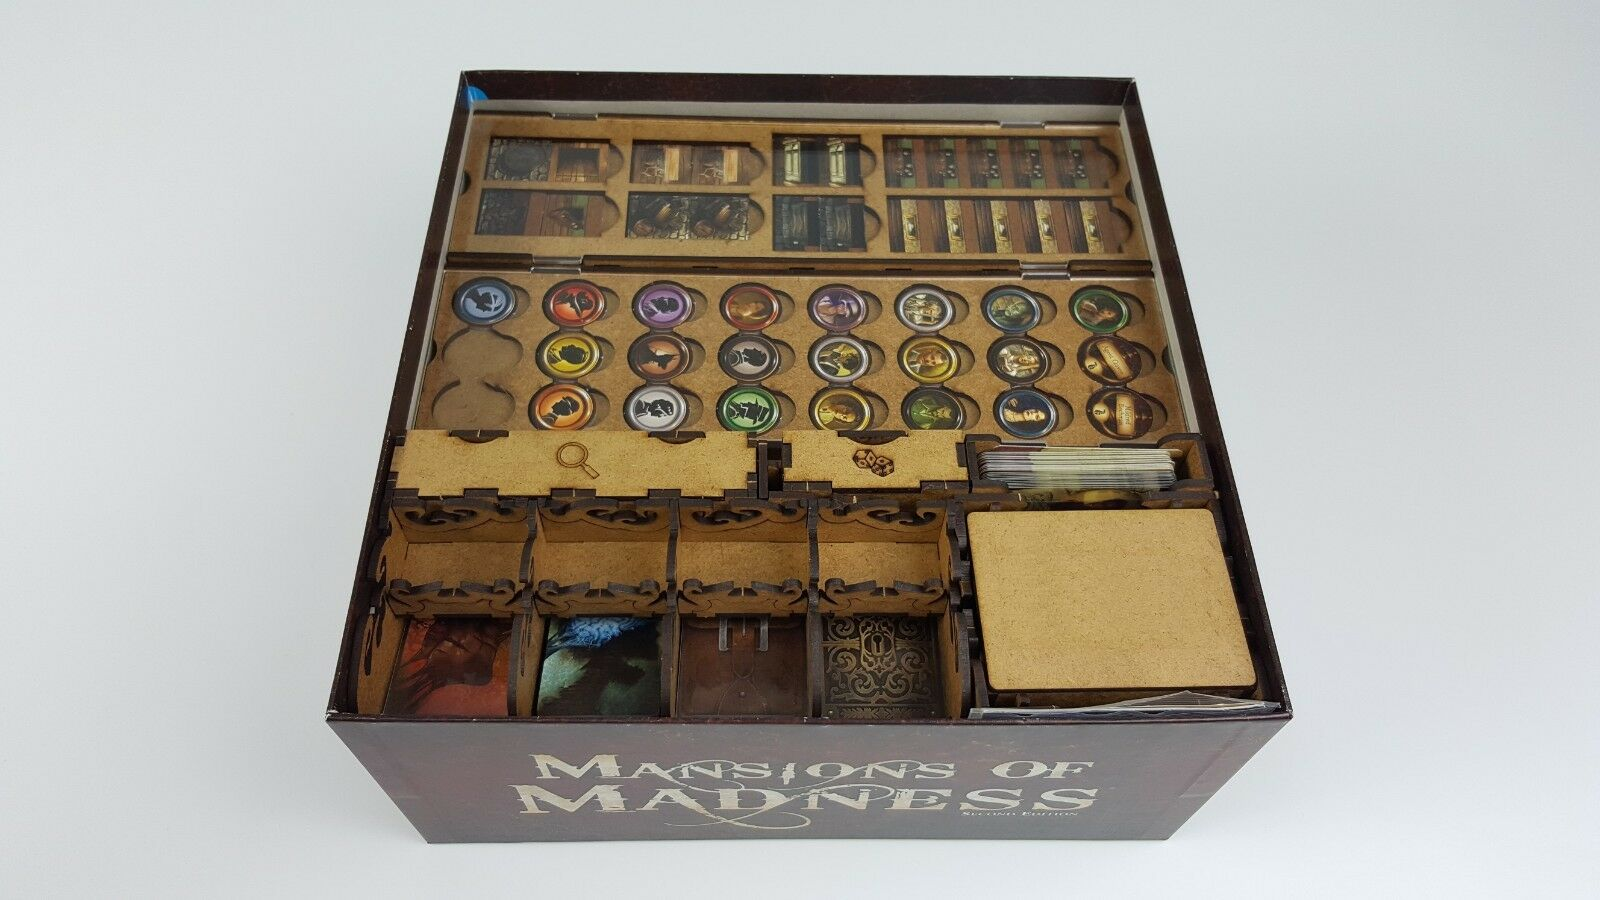 Mansion of Madness Second edition Organizer